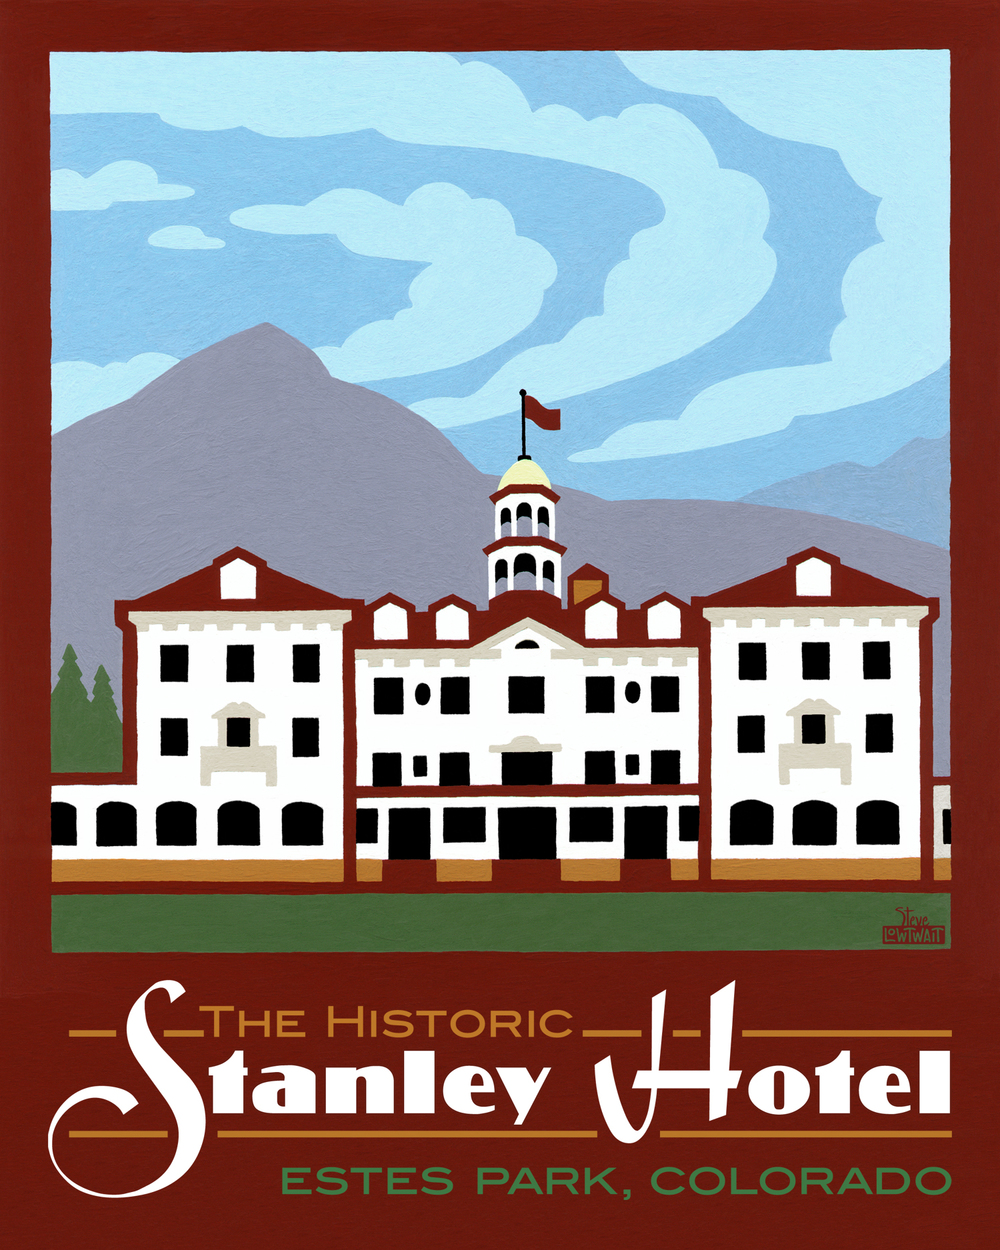 Stanley Hotel - Estes Park, Colorado • Buy